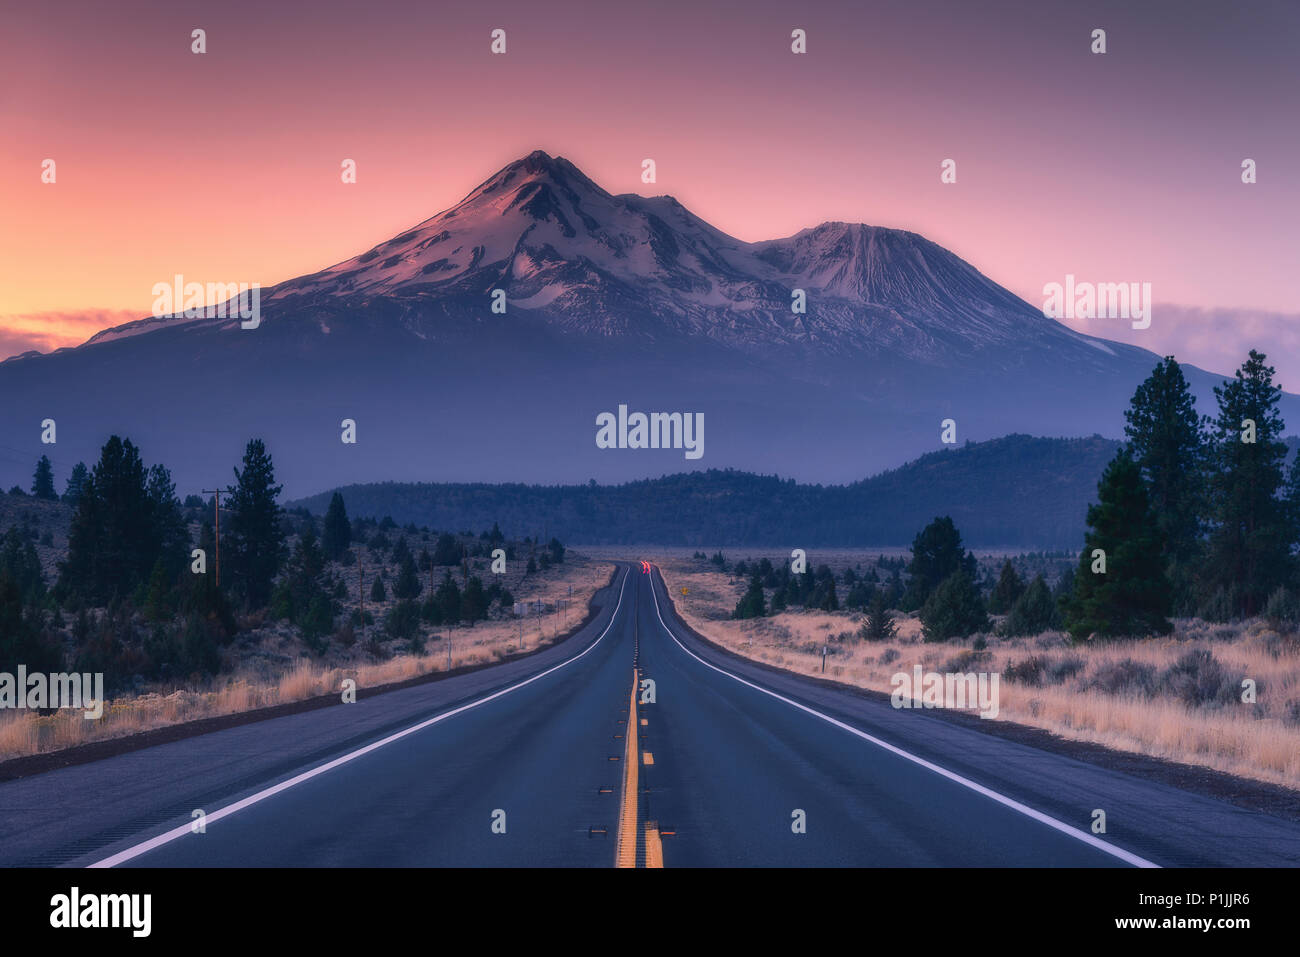 Volcano Mount Shasta behind a highway during sunrise in California, USA - Stock Image